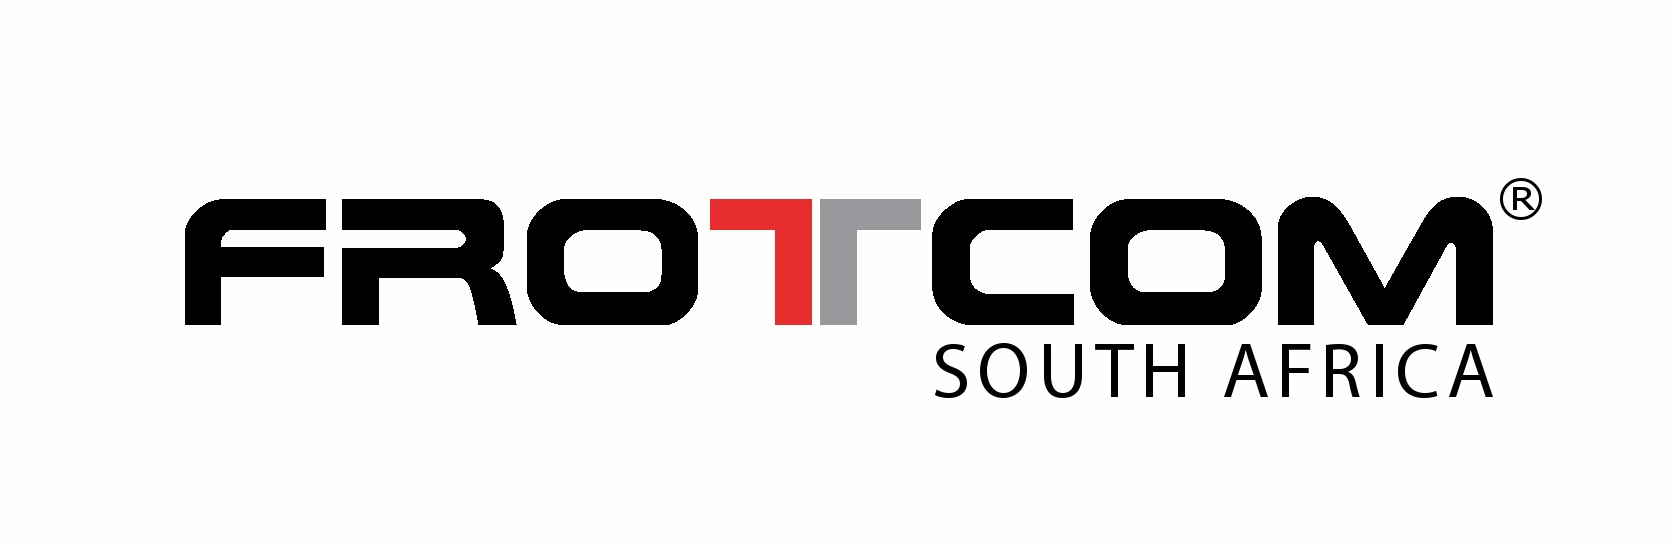 Logo Frotcom South Africa